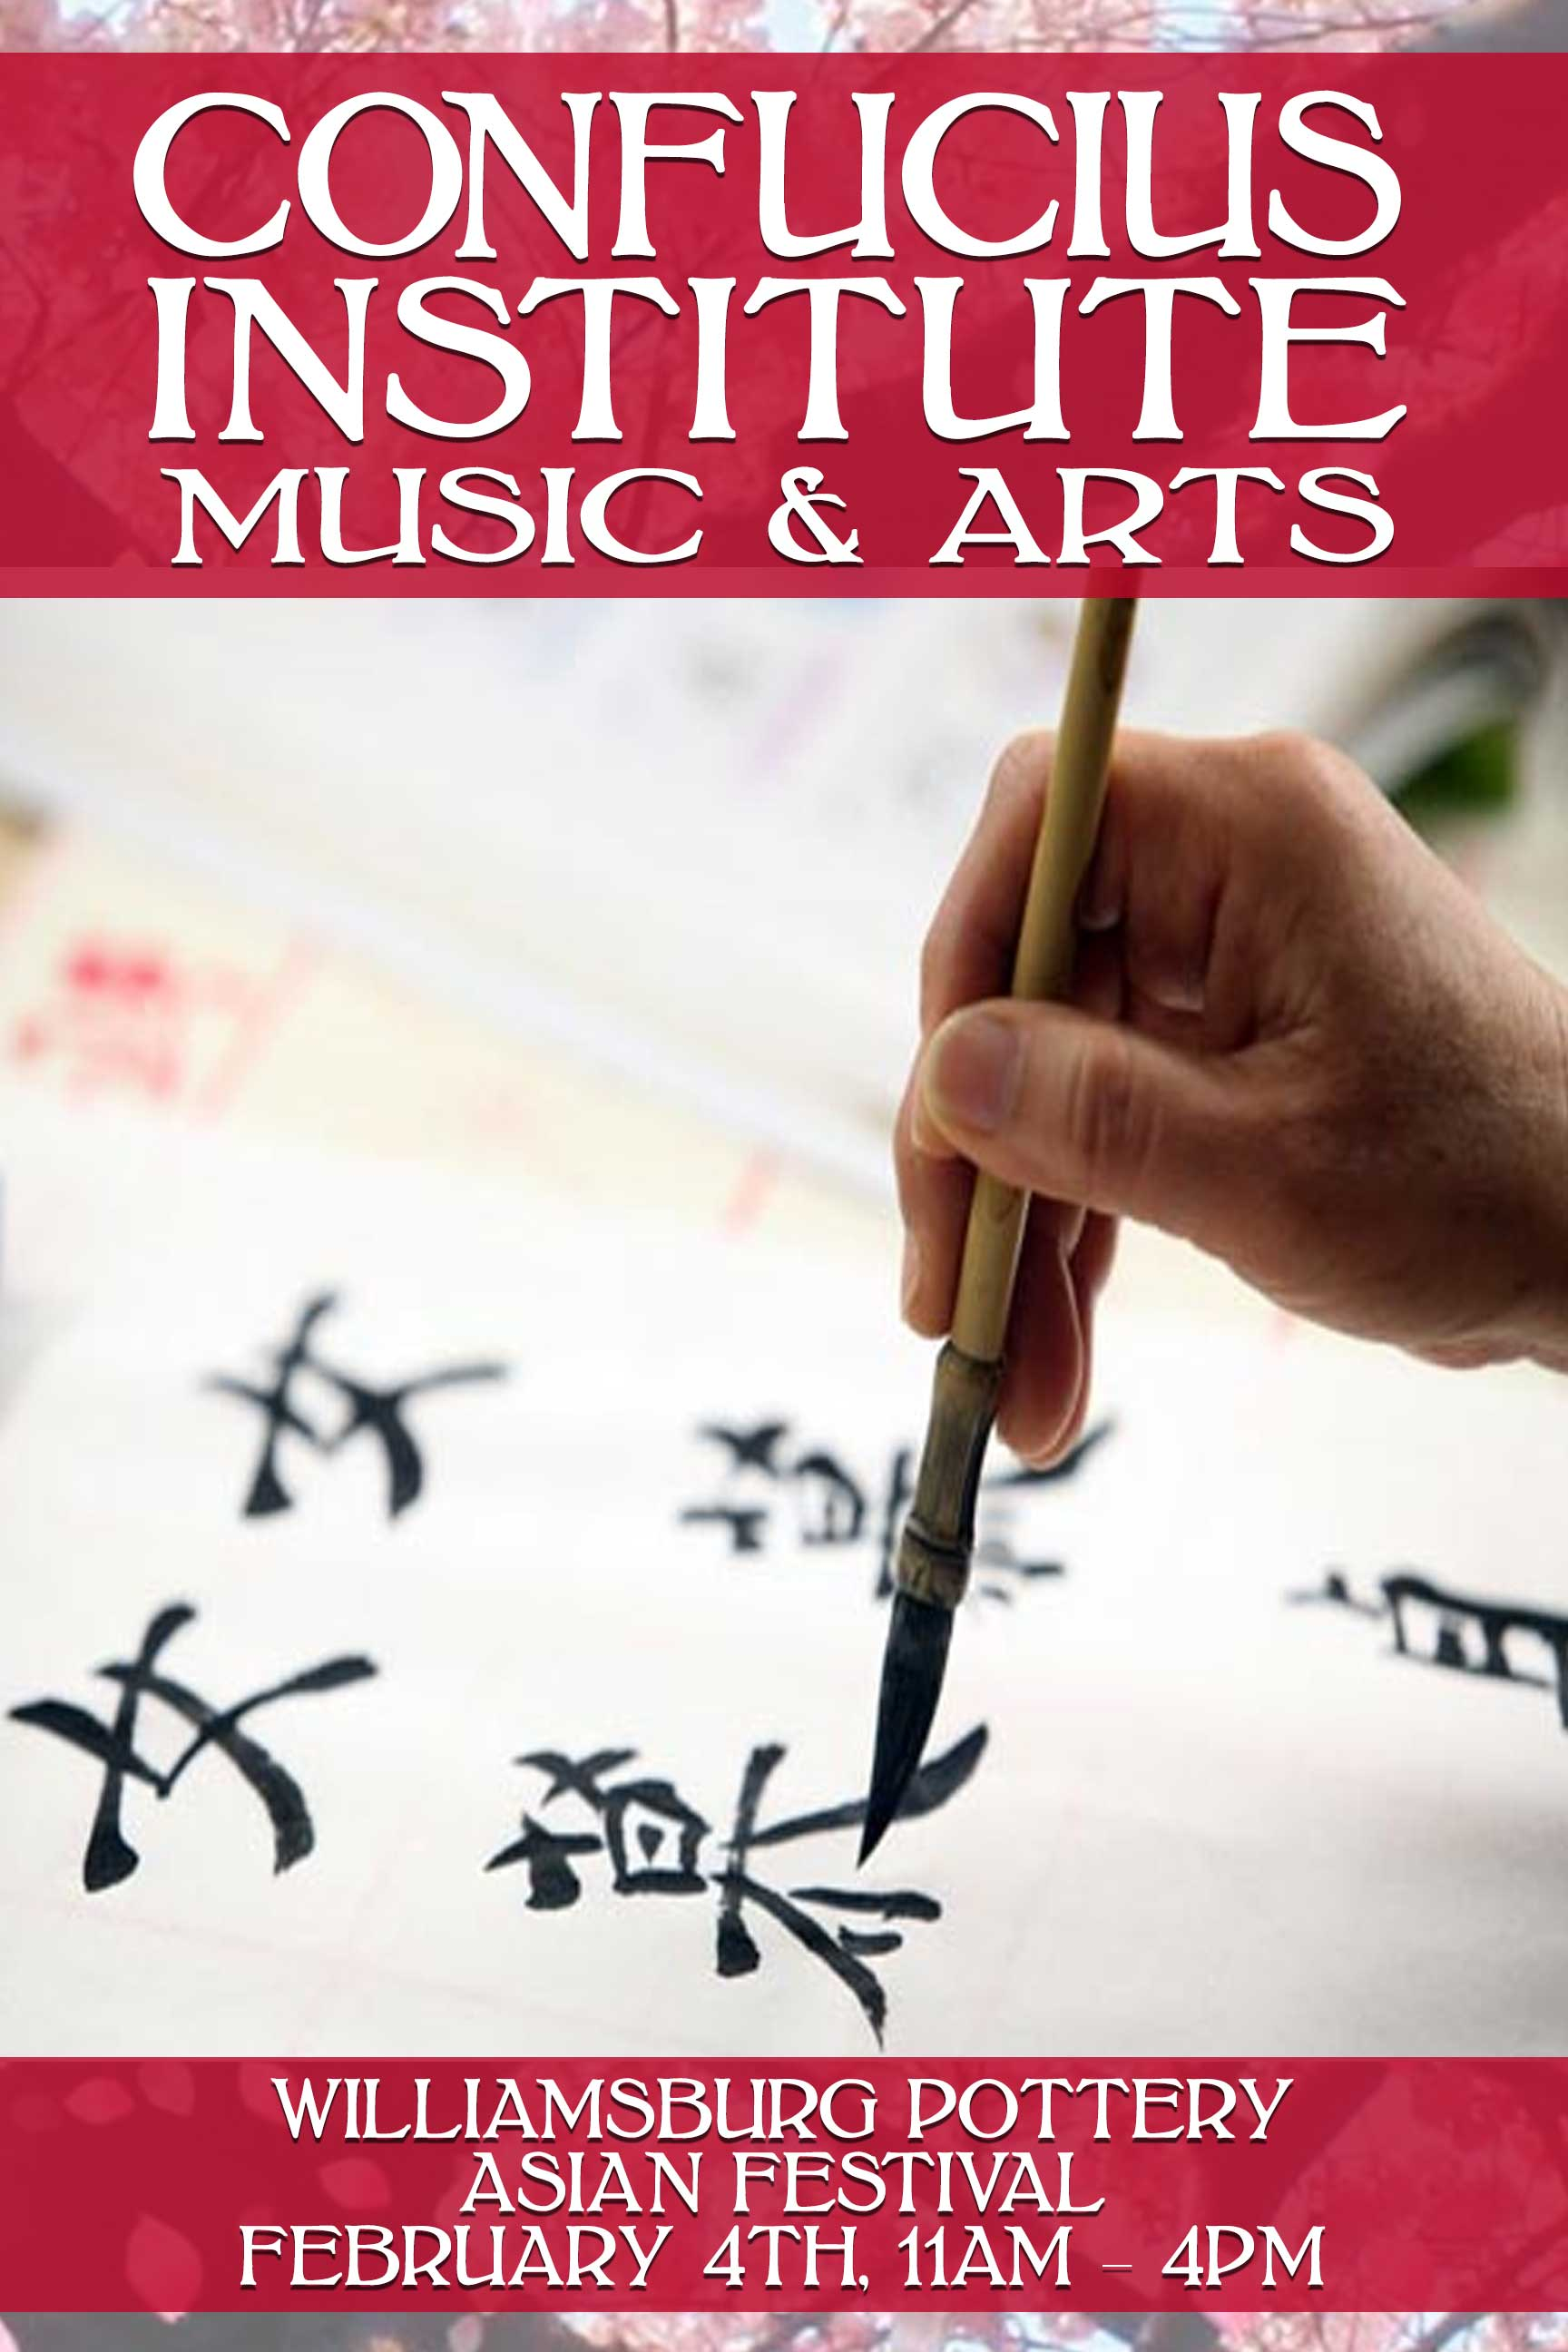 Confucius Institute Music & Arts